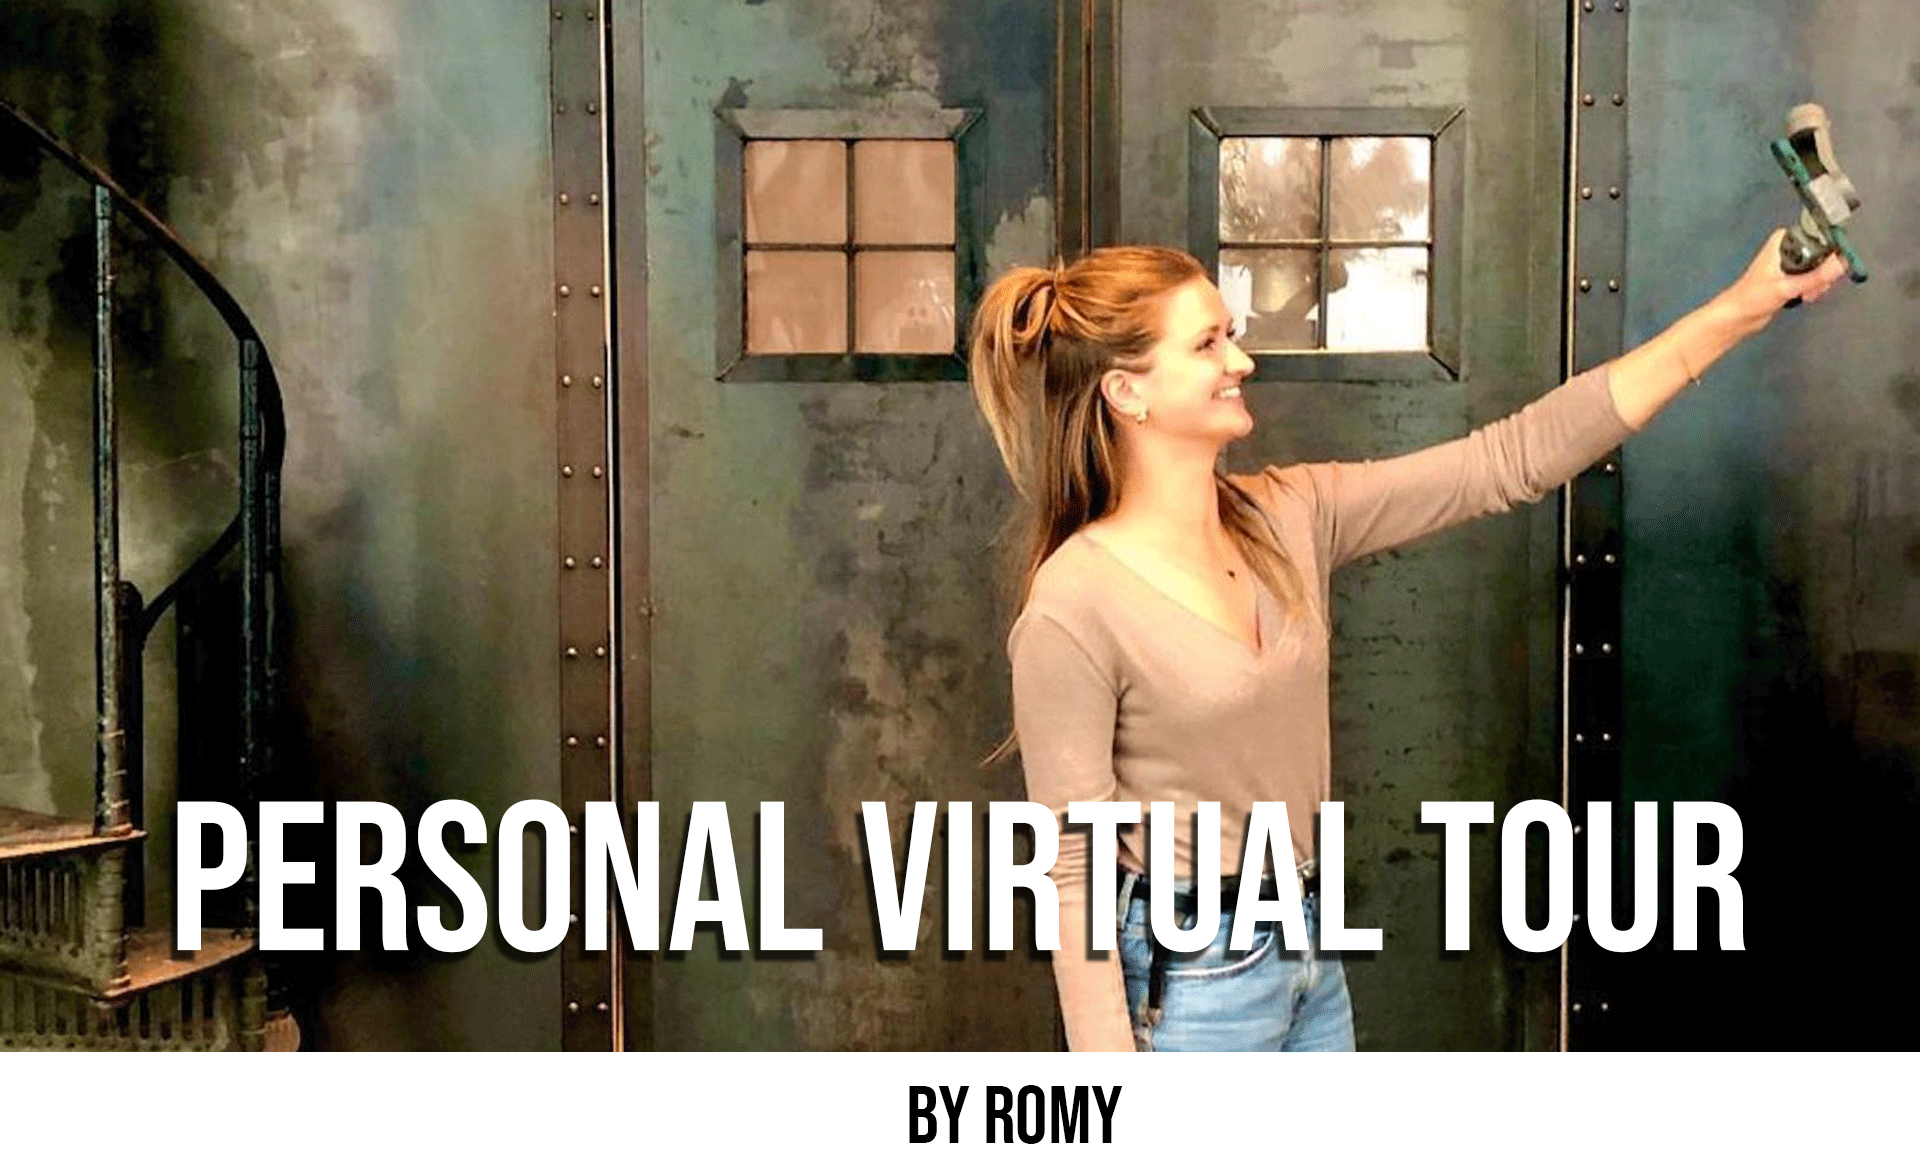 Personal Virtual Tour by Romy